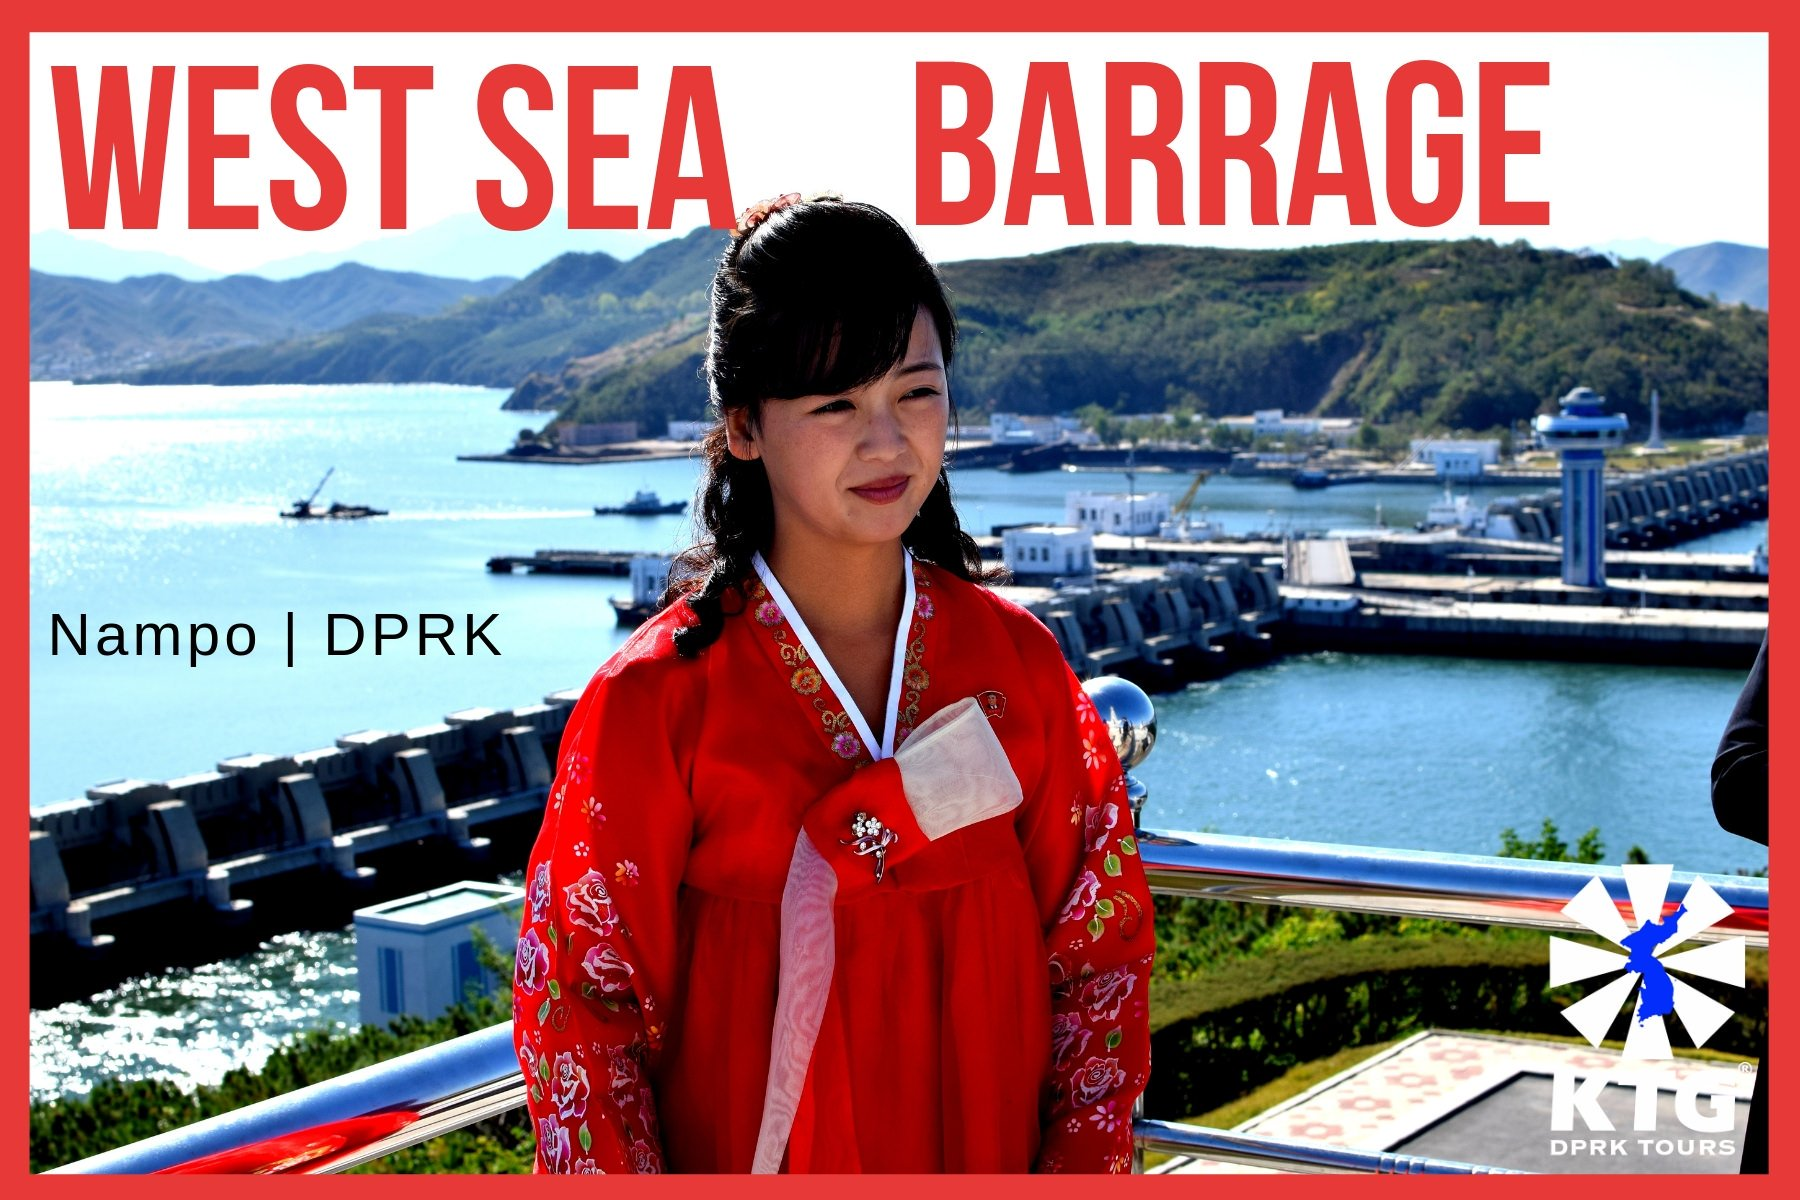 West Sea Barrage in Nampo, North Korea (DPRK) with KTG tours